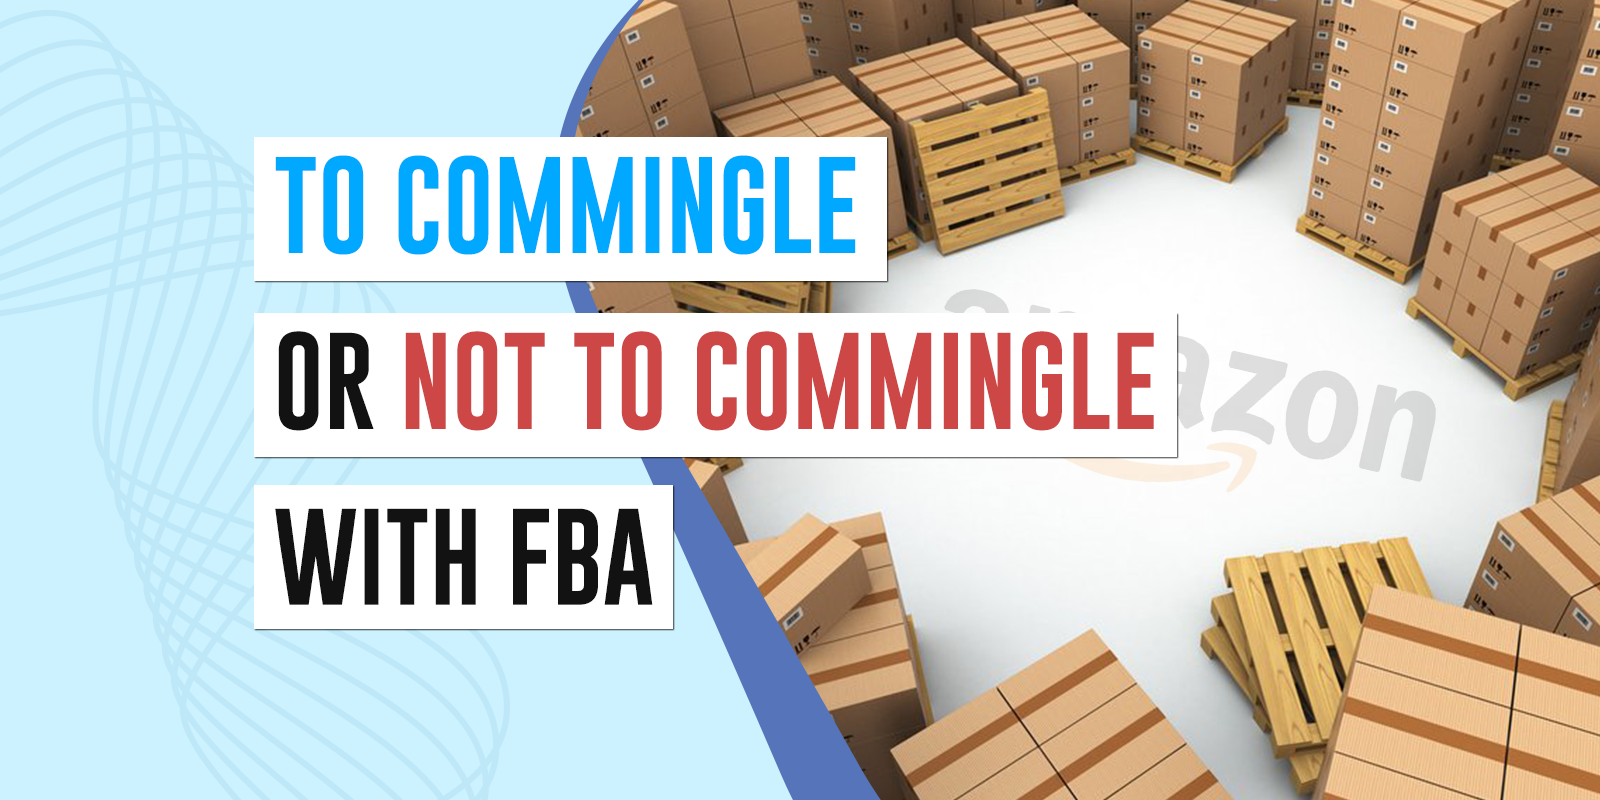 To commingle or not to commingle with FBA